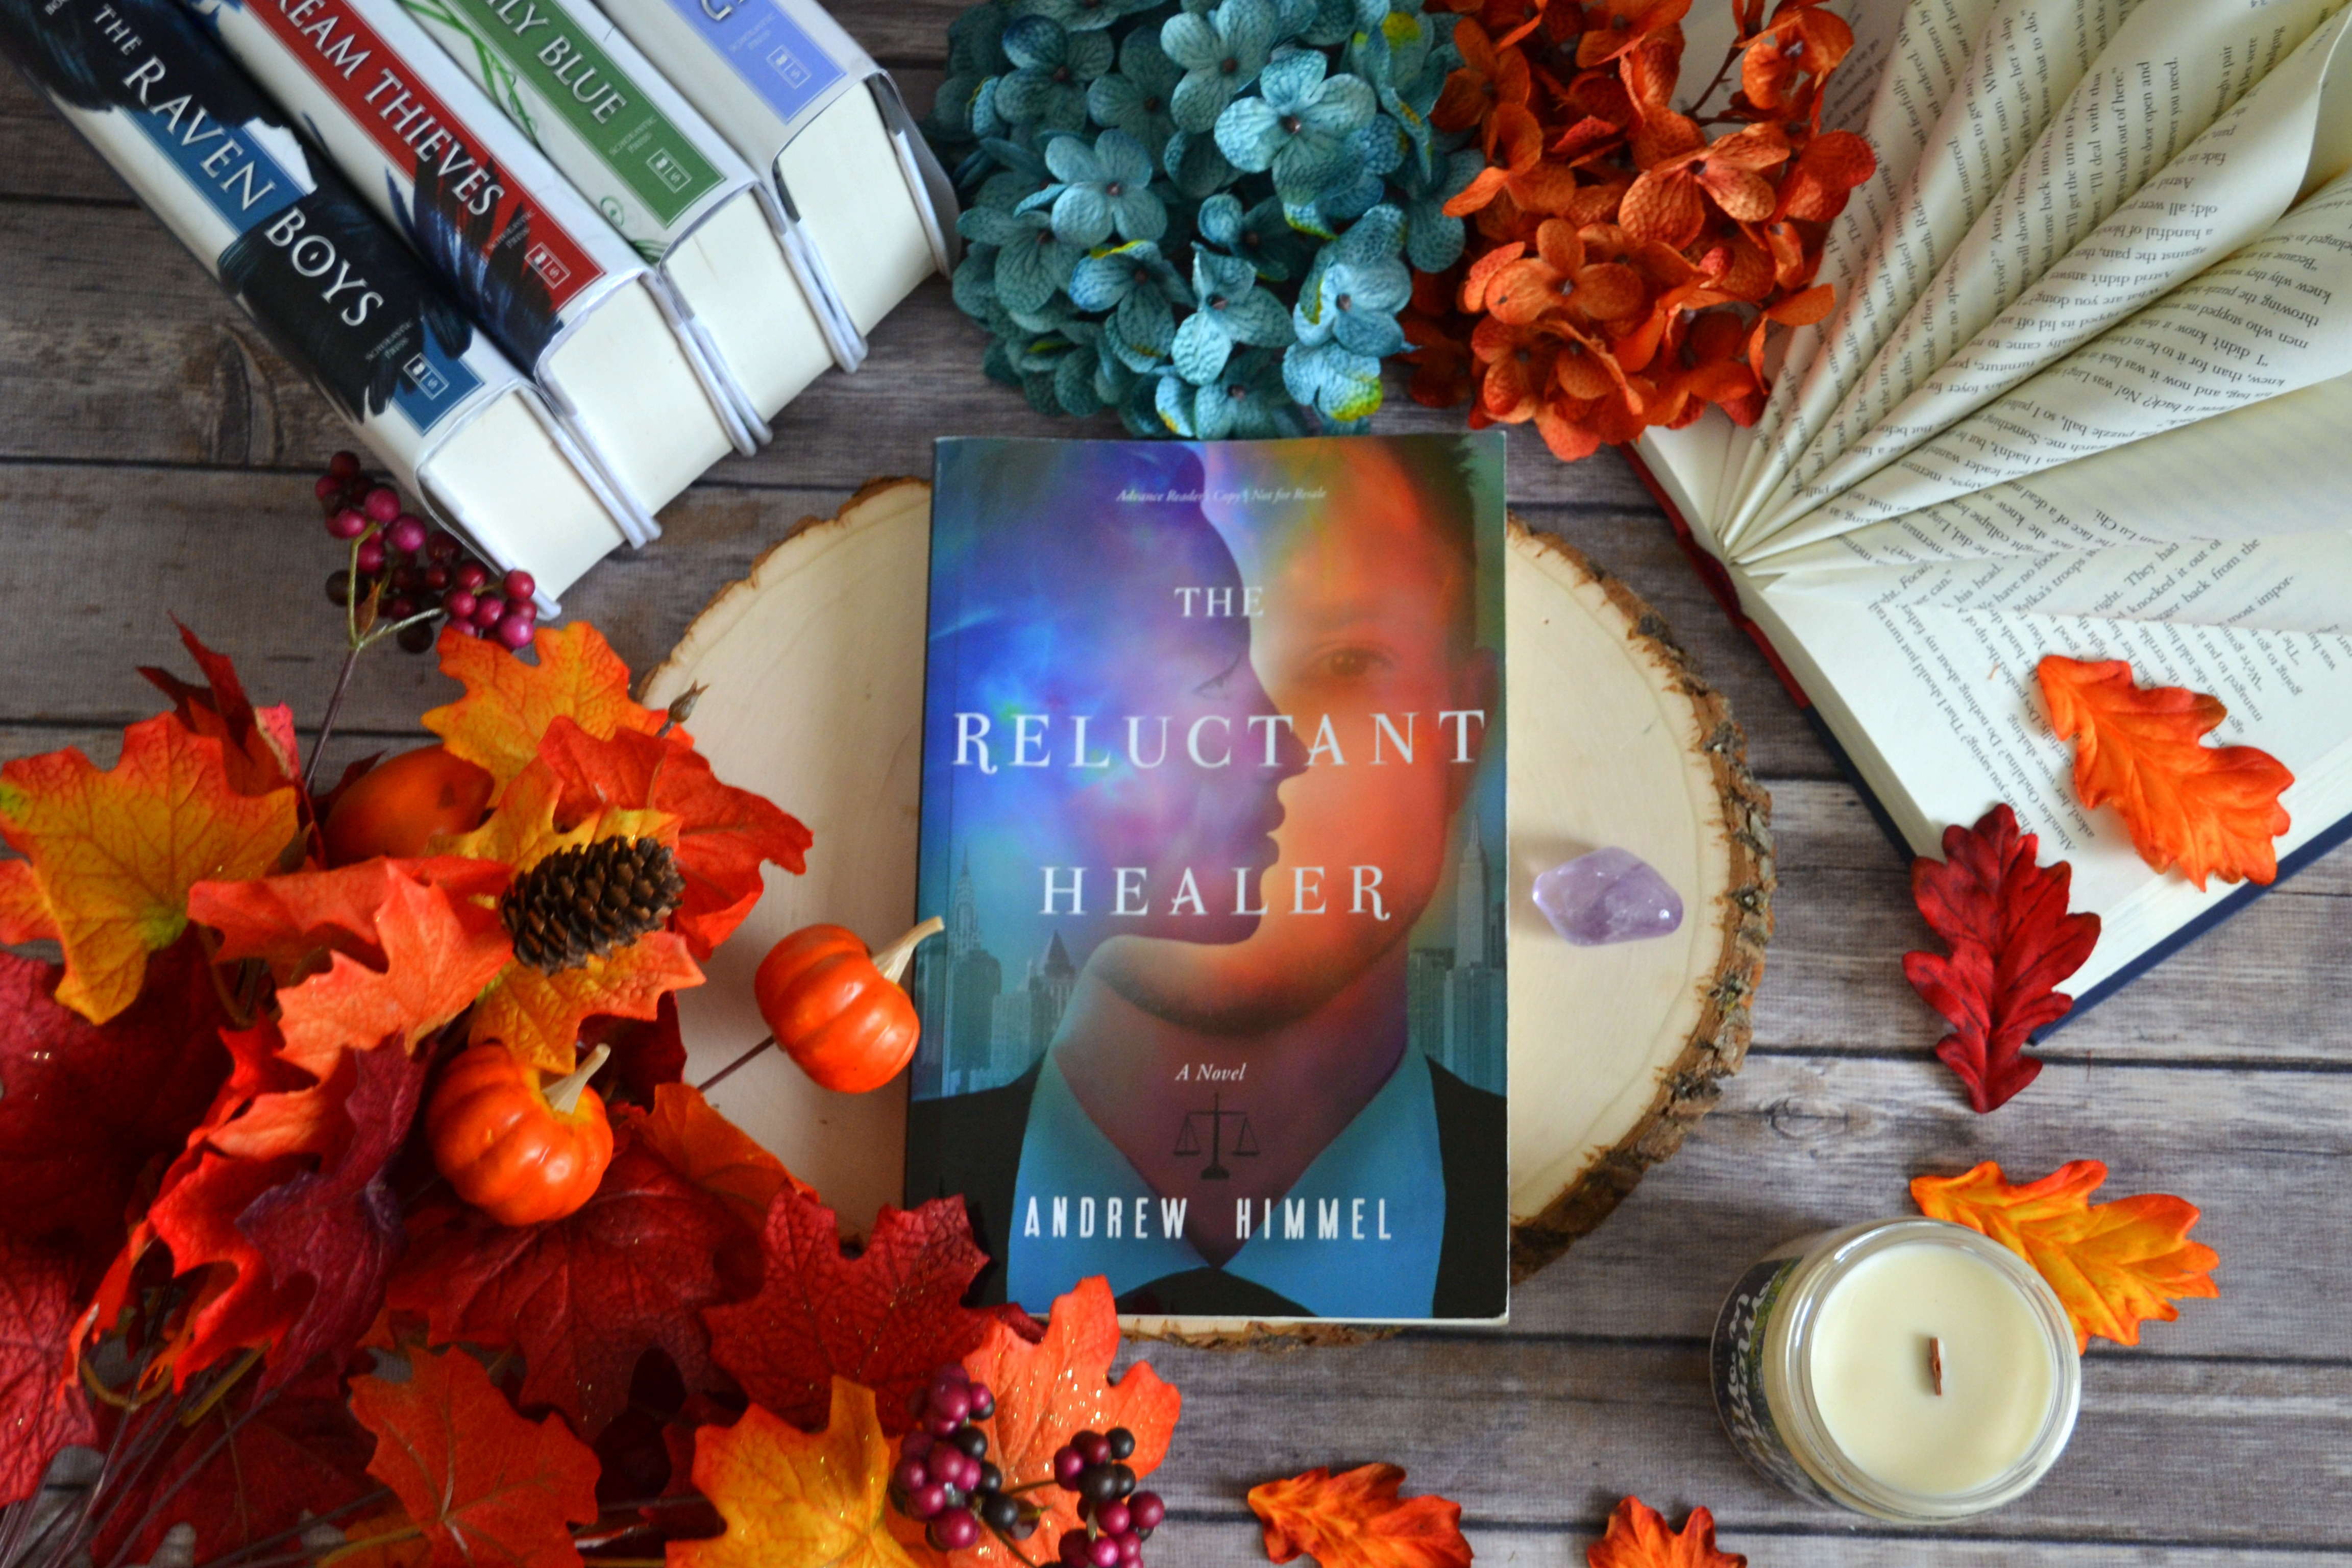 The Reluctant Healer by Andrew Himmel | ARC Review